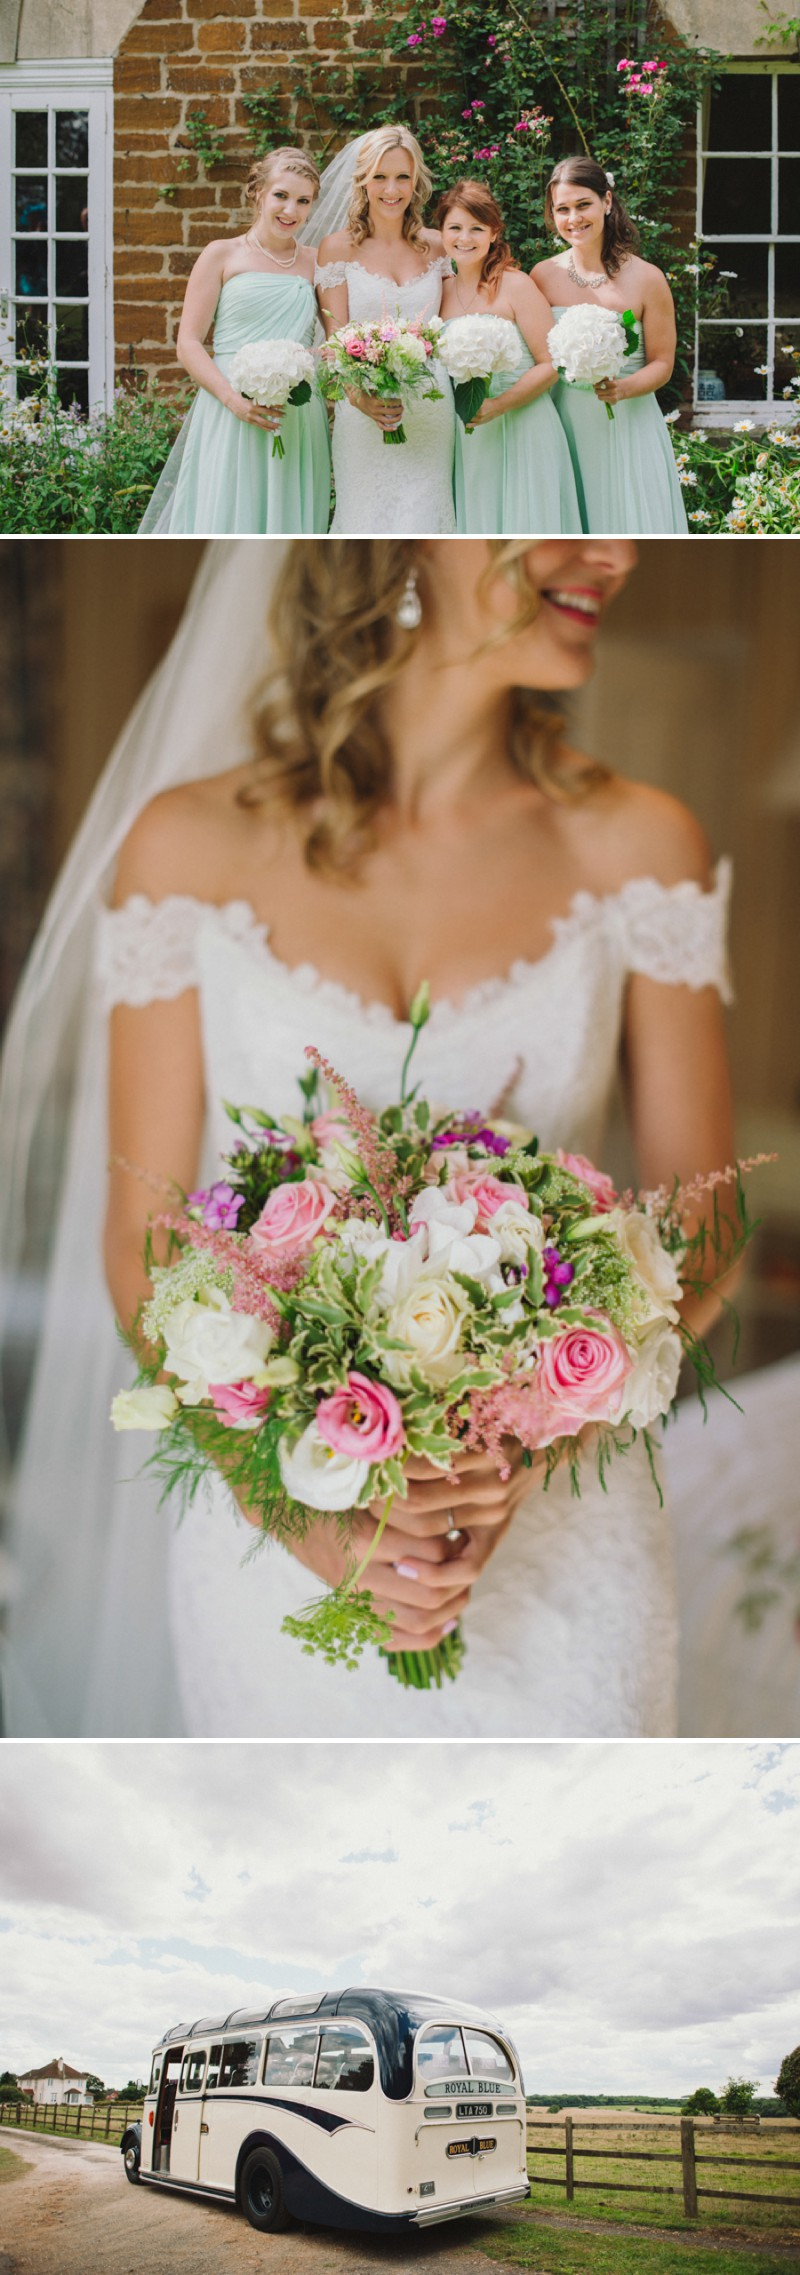 An English Back Garden Wedding With A Romona Keveza Dress And Jimmy Choos And A Pink Rose Bouquet With Mint Bridesmaid Dresses By KRAAN Wedding Photography._0005